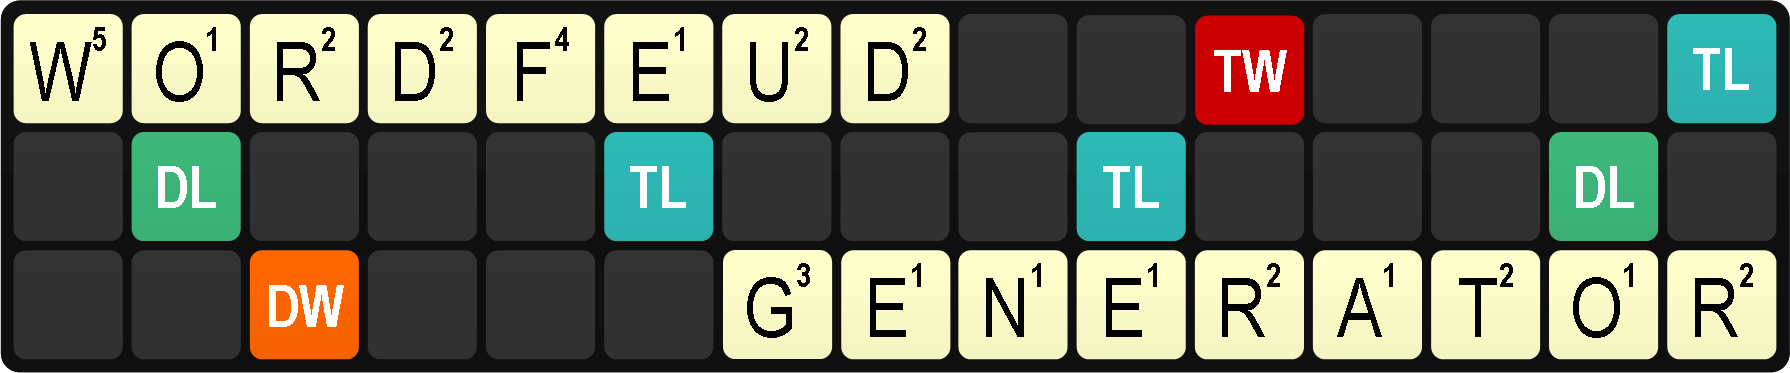 Wordfeud generator